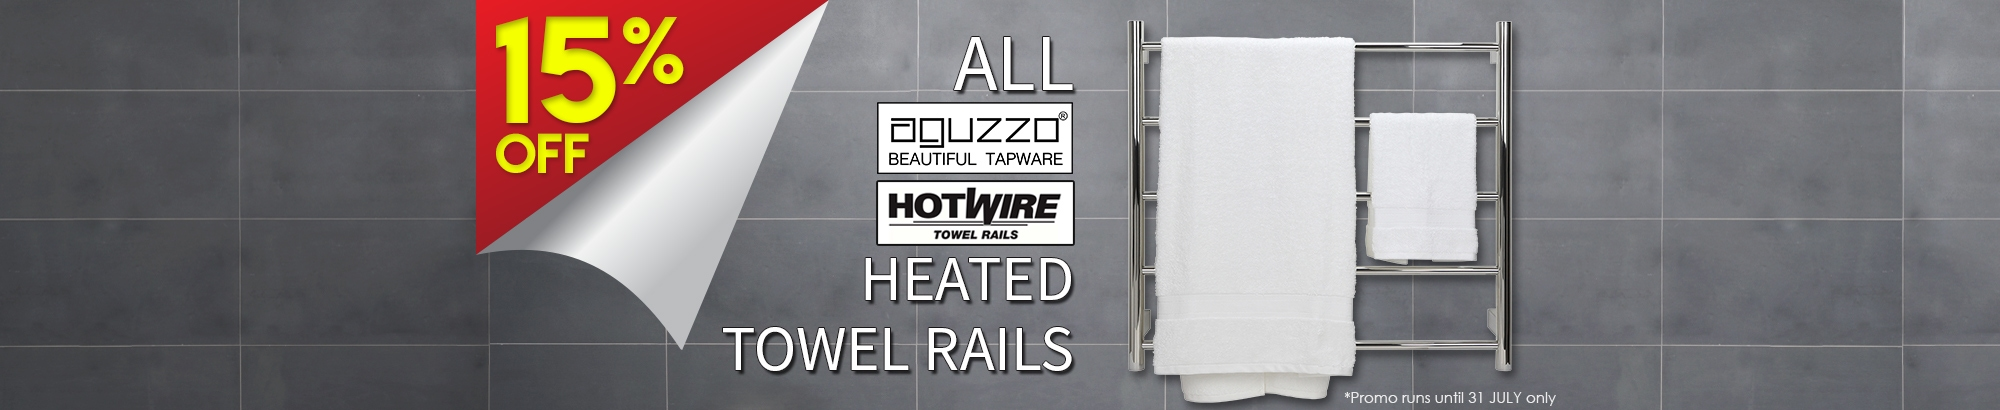 15% OFF Aguzzo and Hotwire HTRs